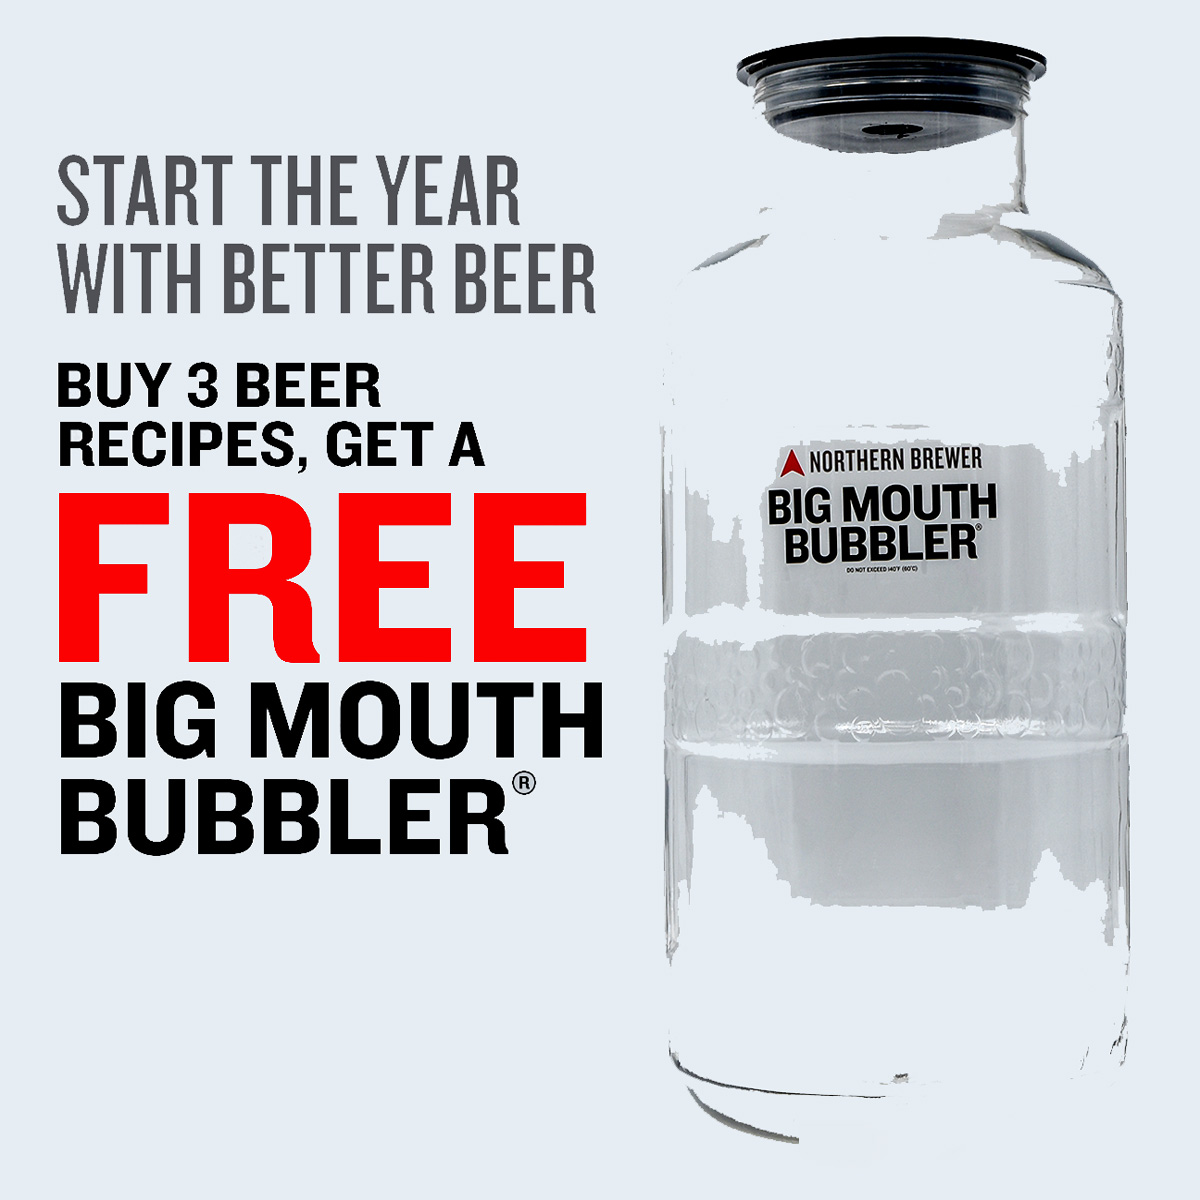 Northern Brewer Buy 3 Beer Kits And Get A Free Big Mouth Bubbler Fermenter Northern Brewer Promo Code Coupon Code